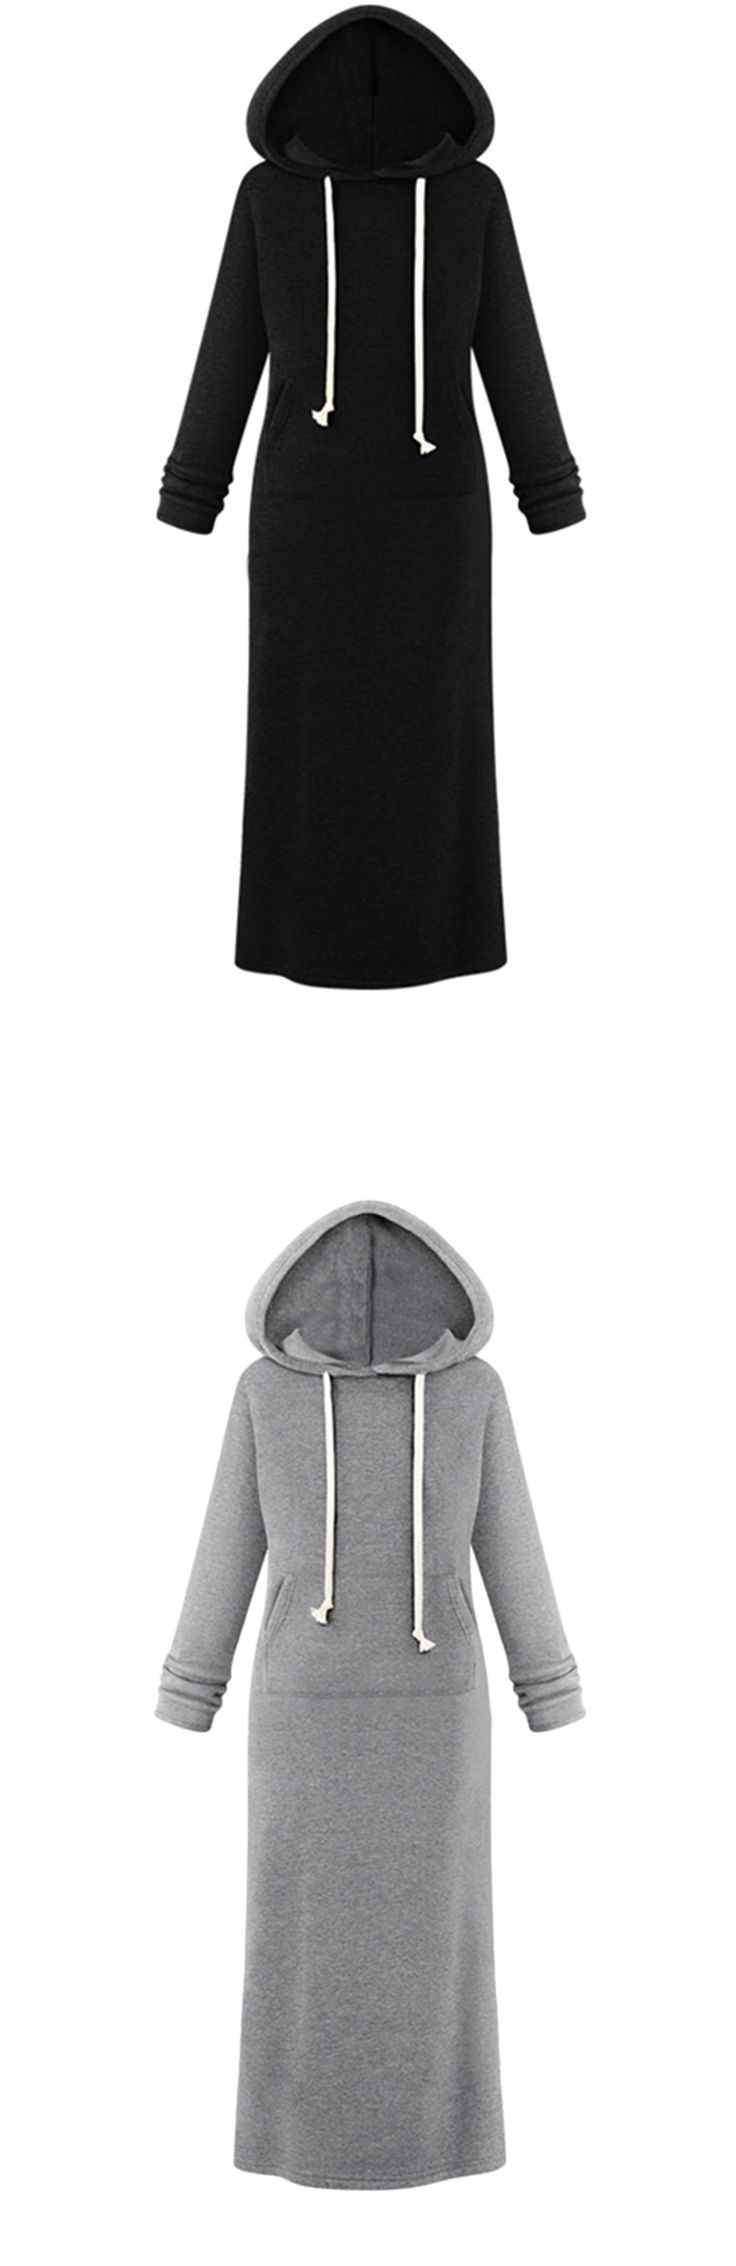 Women's Hooded Pullover Maxi Sweatshirt Dress...